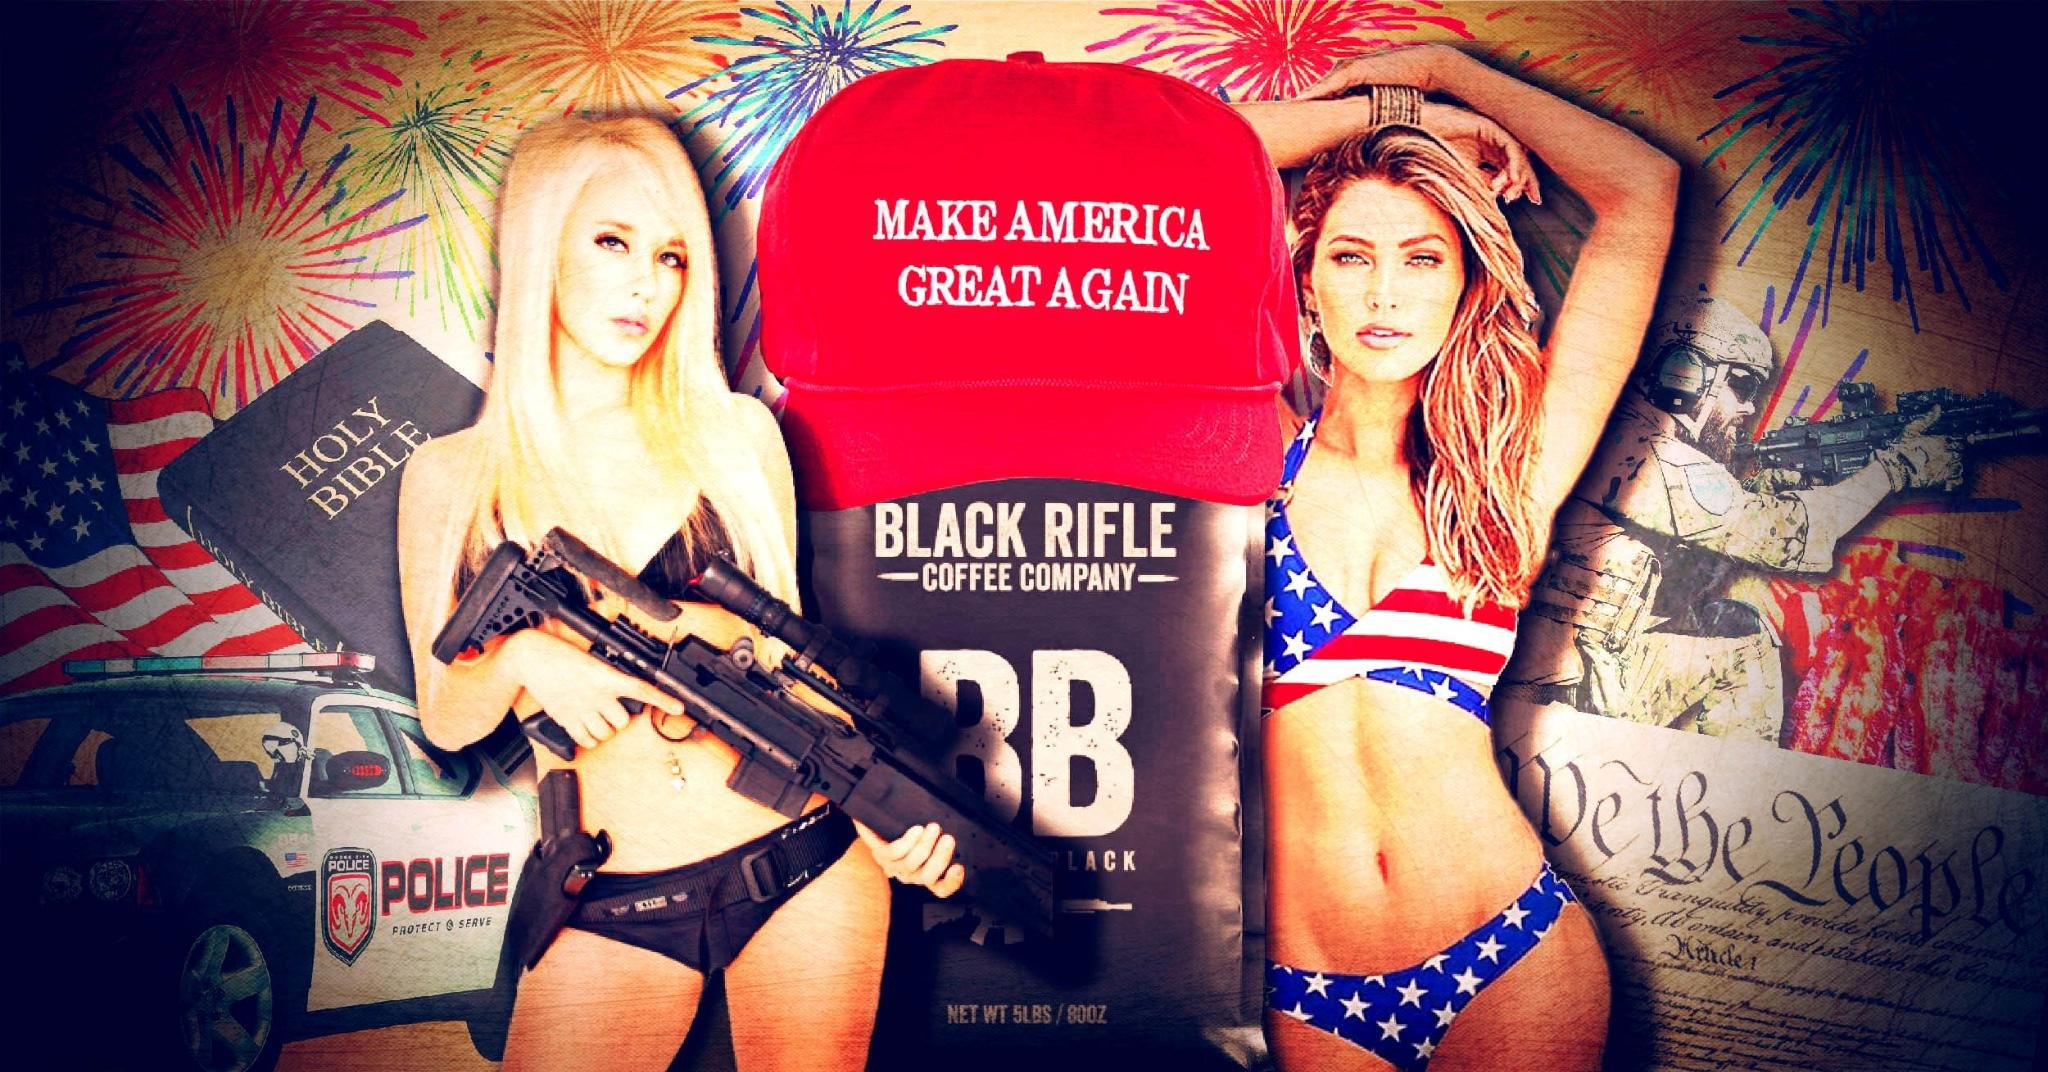 How Black Rifle Coffee Used Every Trick In The Book to Fool Conservatives - Revolver